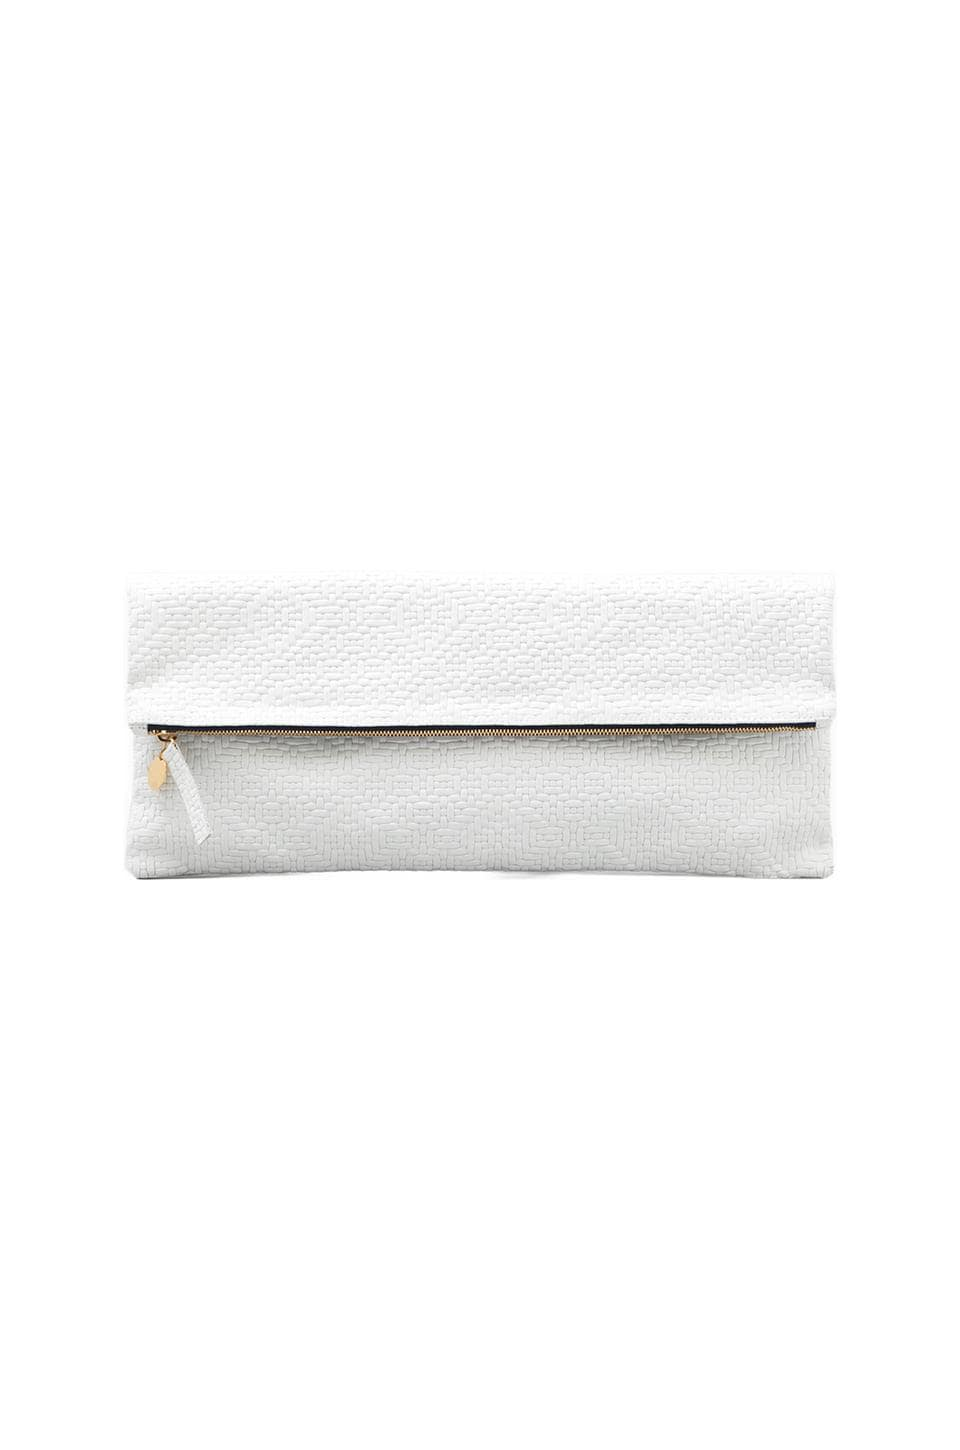 Clare V. Laptop/Oversized Clutch in White Jigsaw